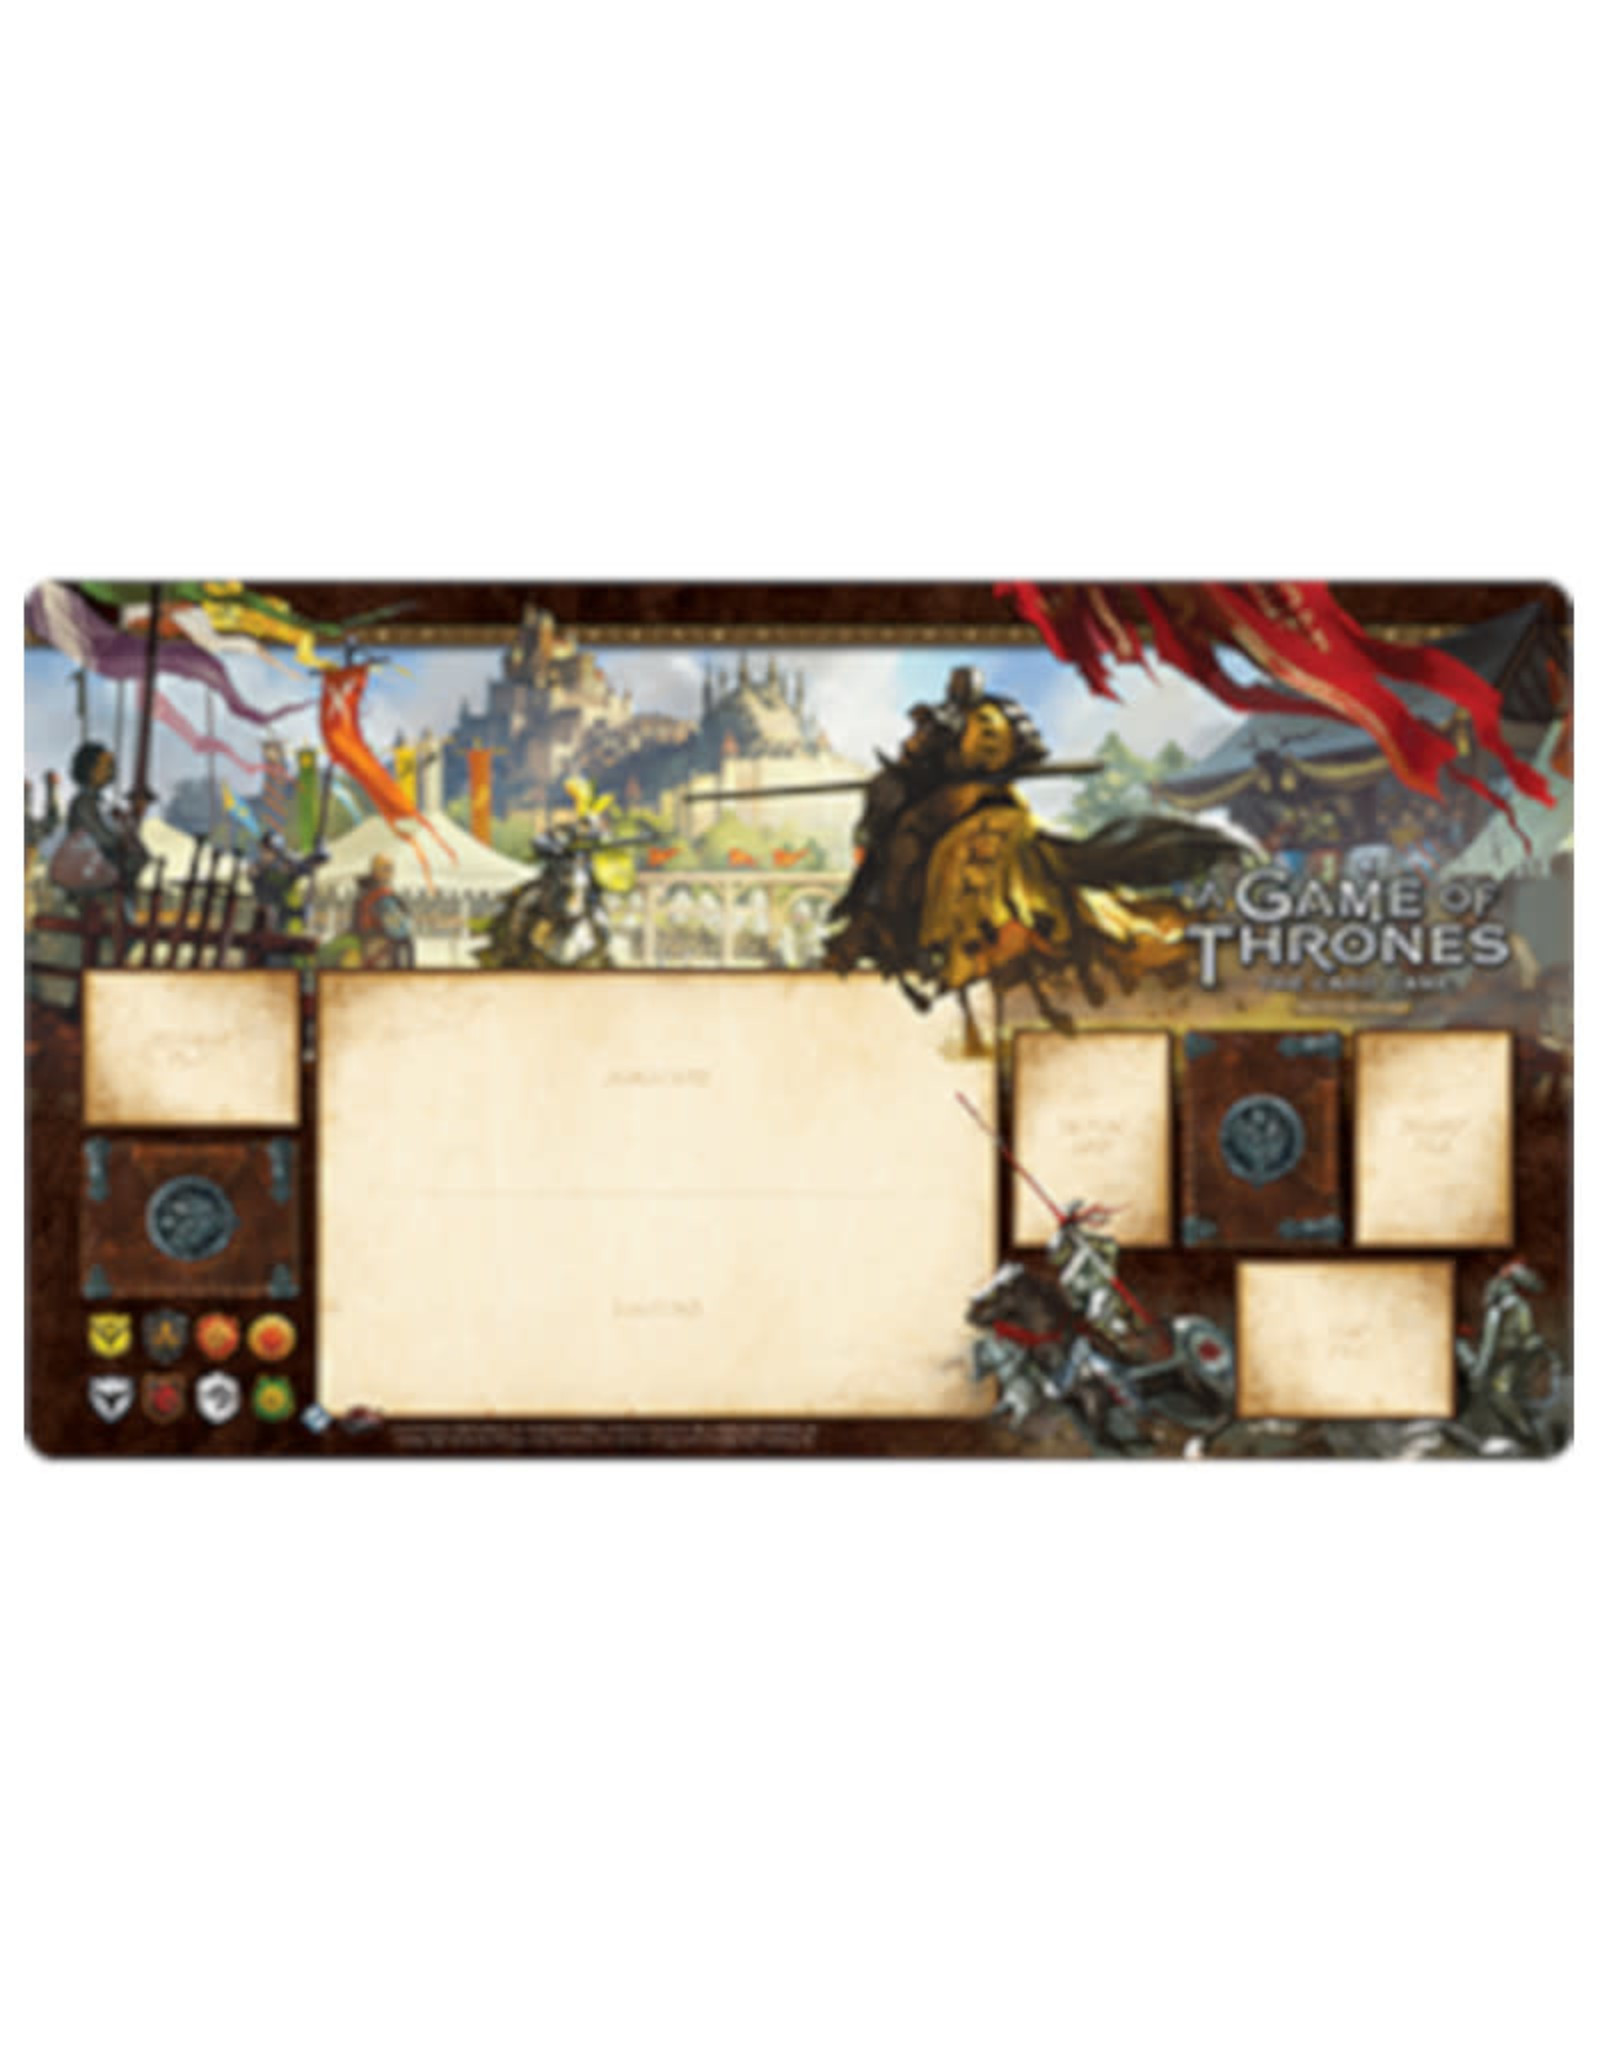 Fantasy Flight Games Game of Thrones LCG Playmat Knights of the Realm